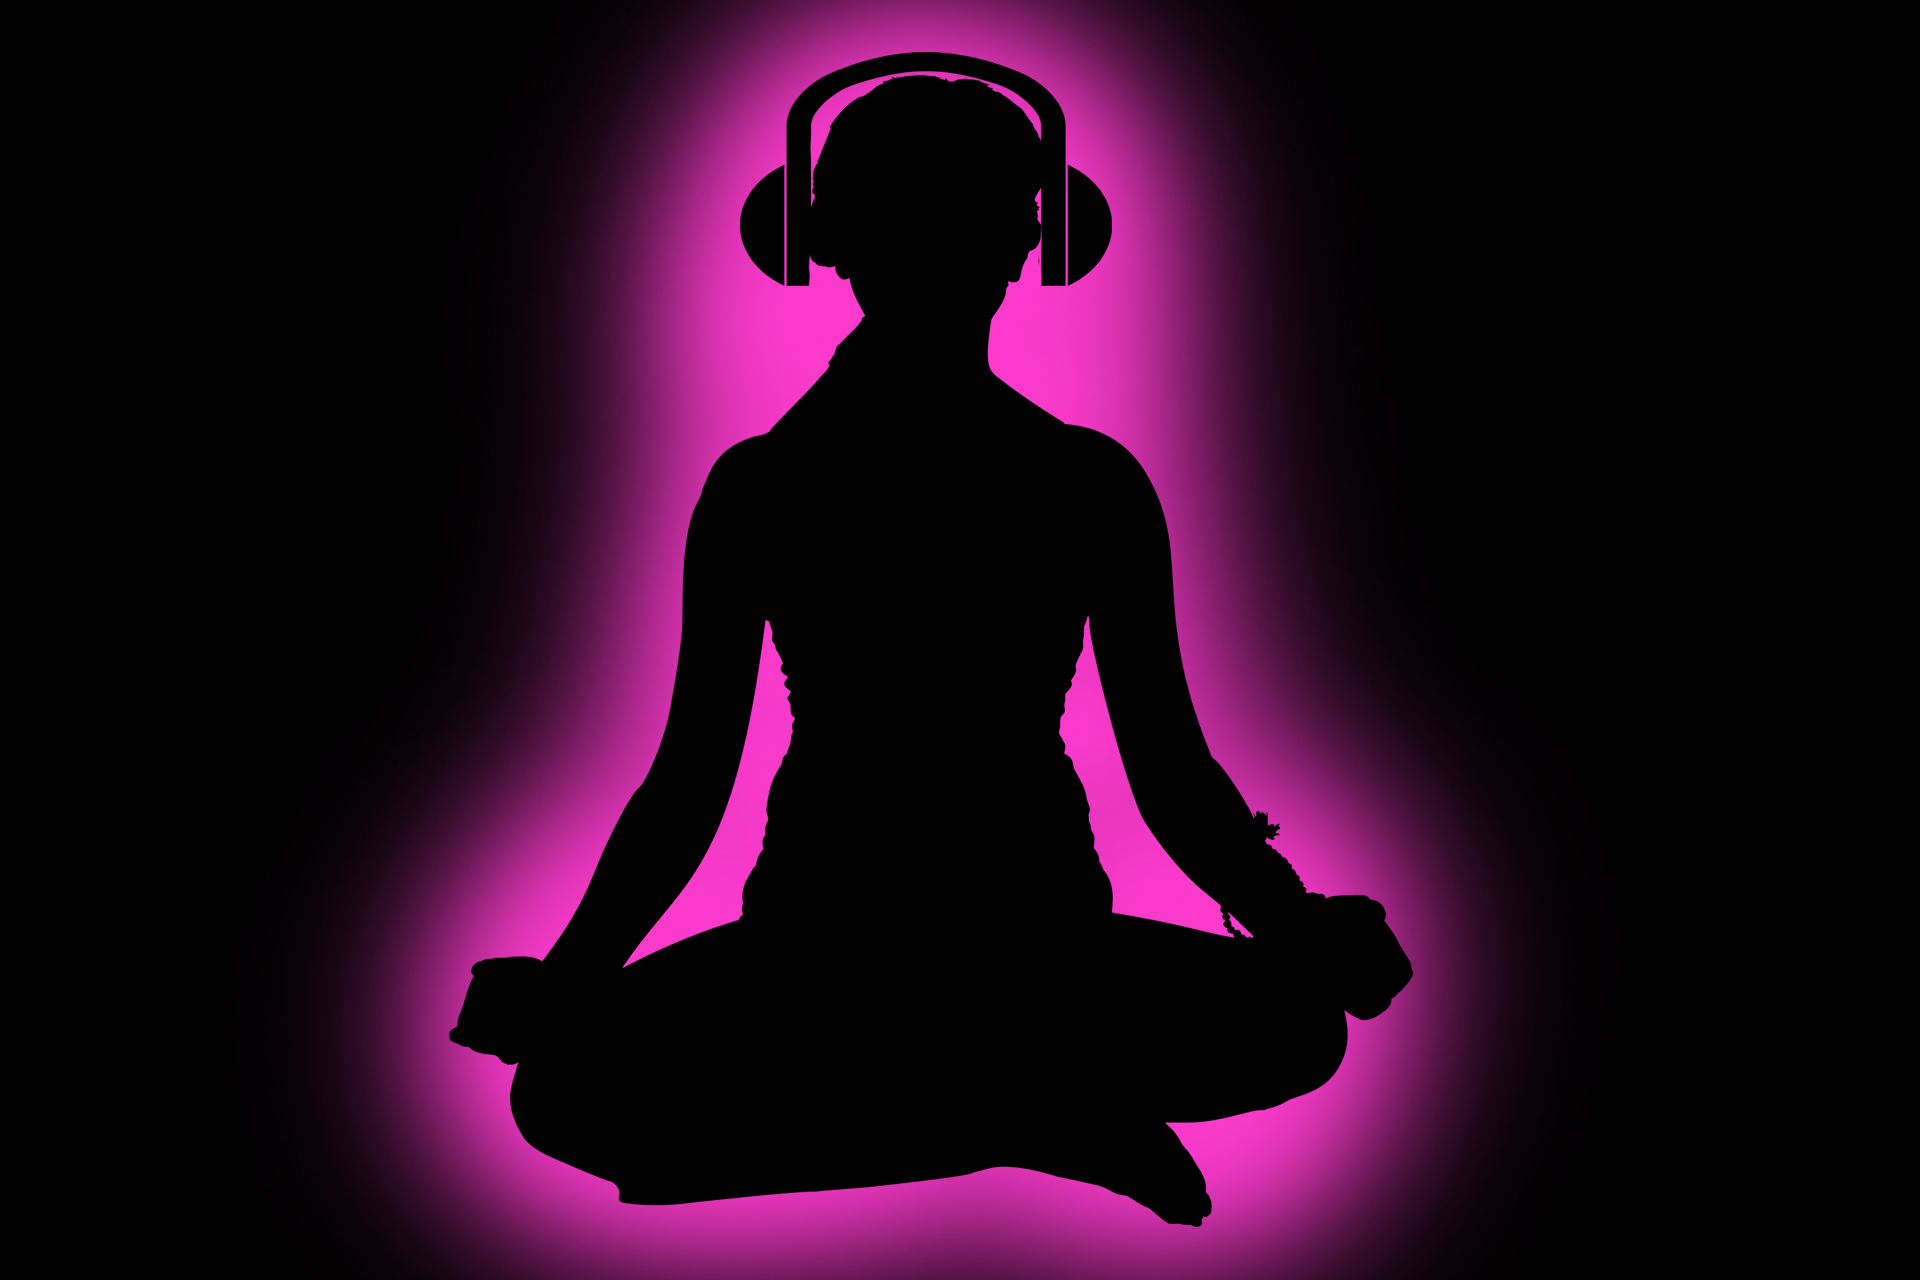 Free-Meditation-Music-MP3-Downloads.jpeg